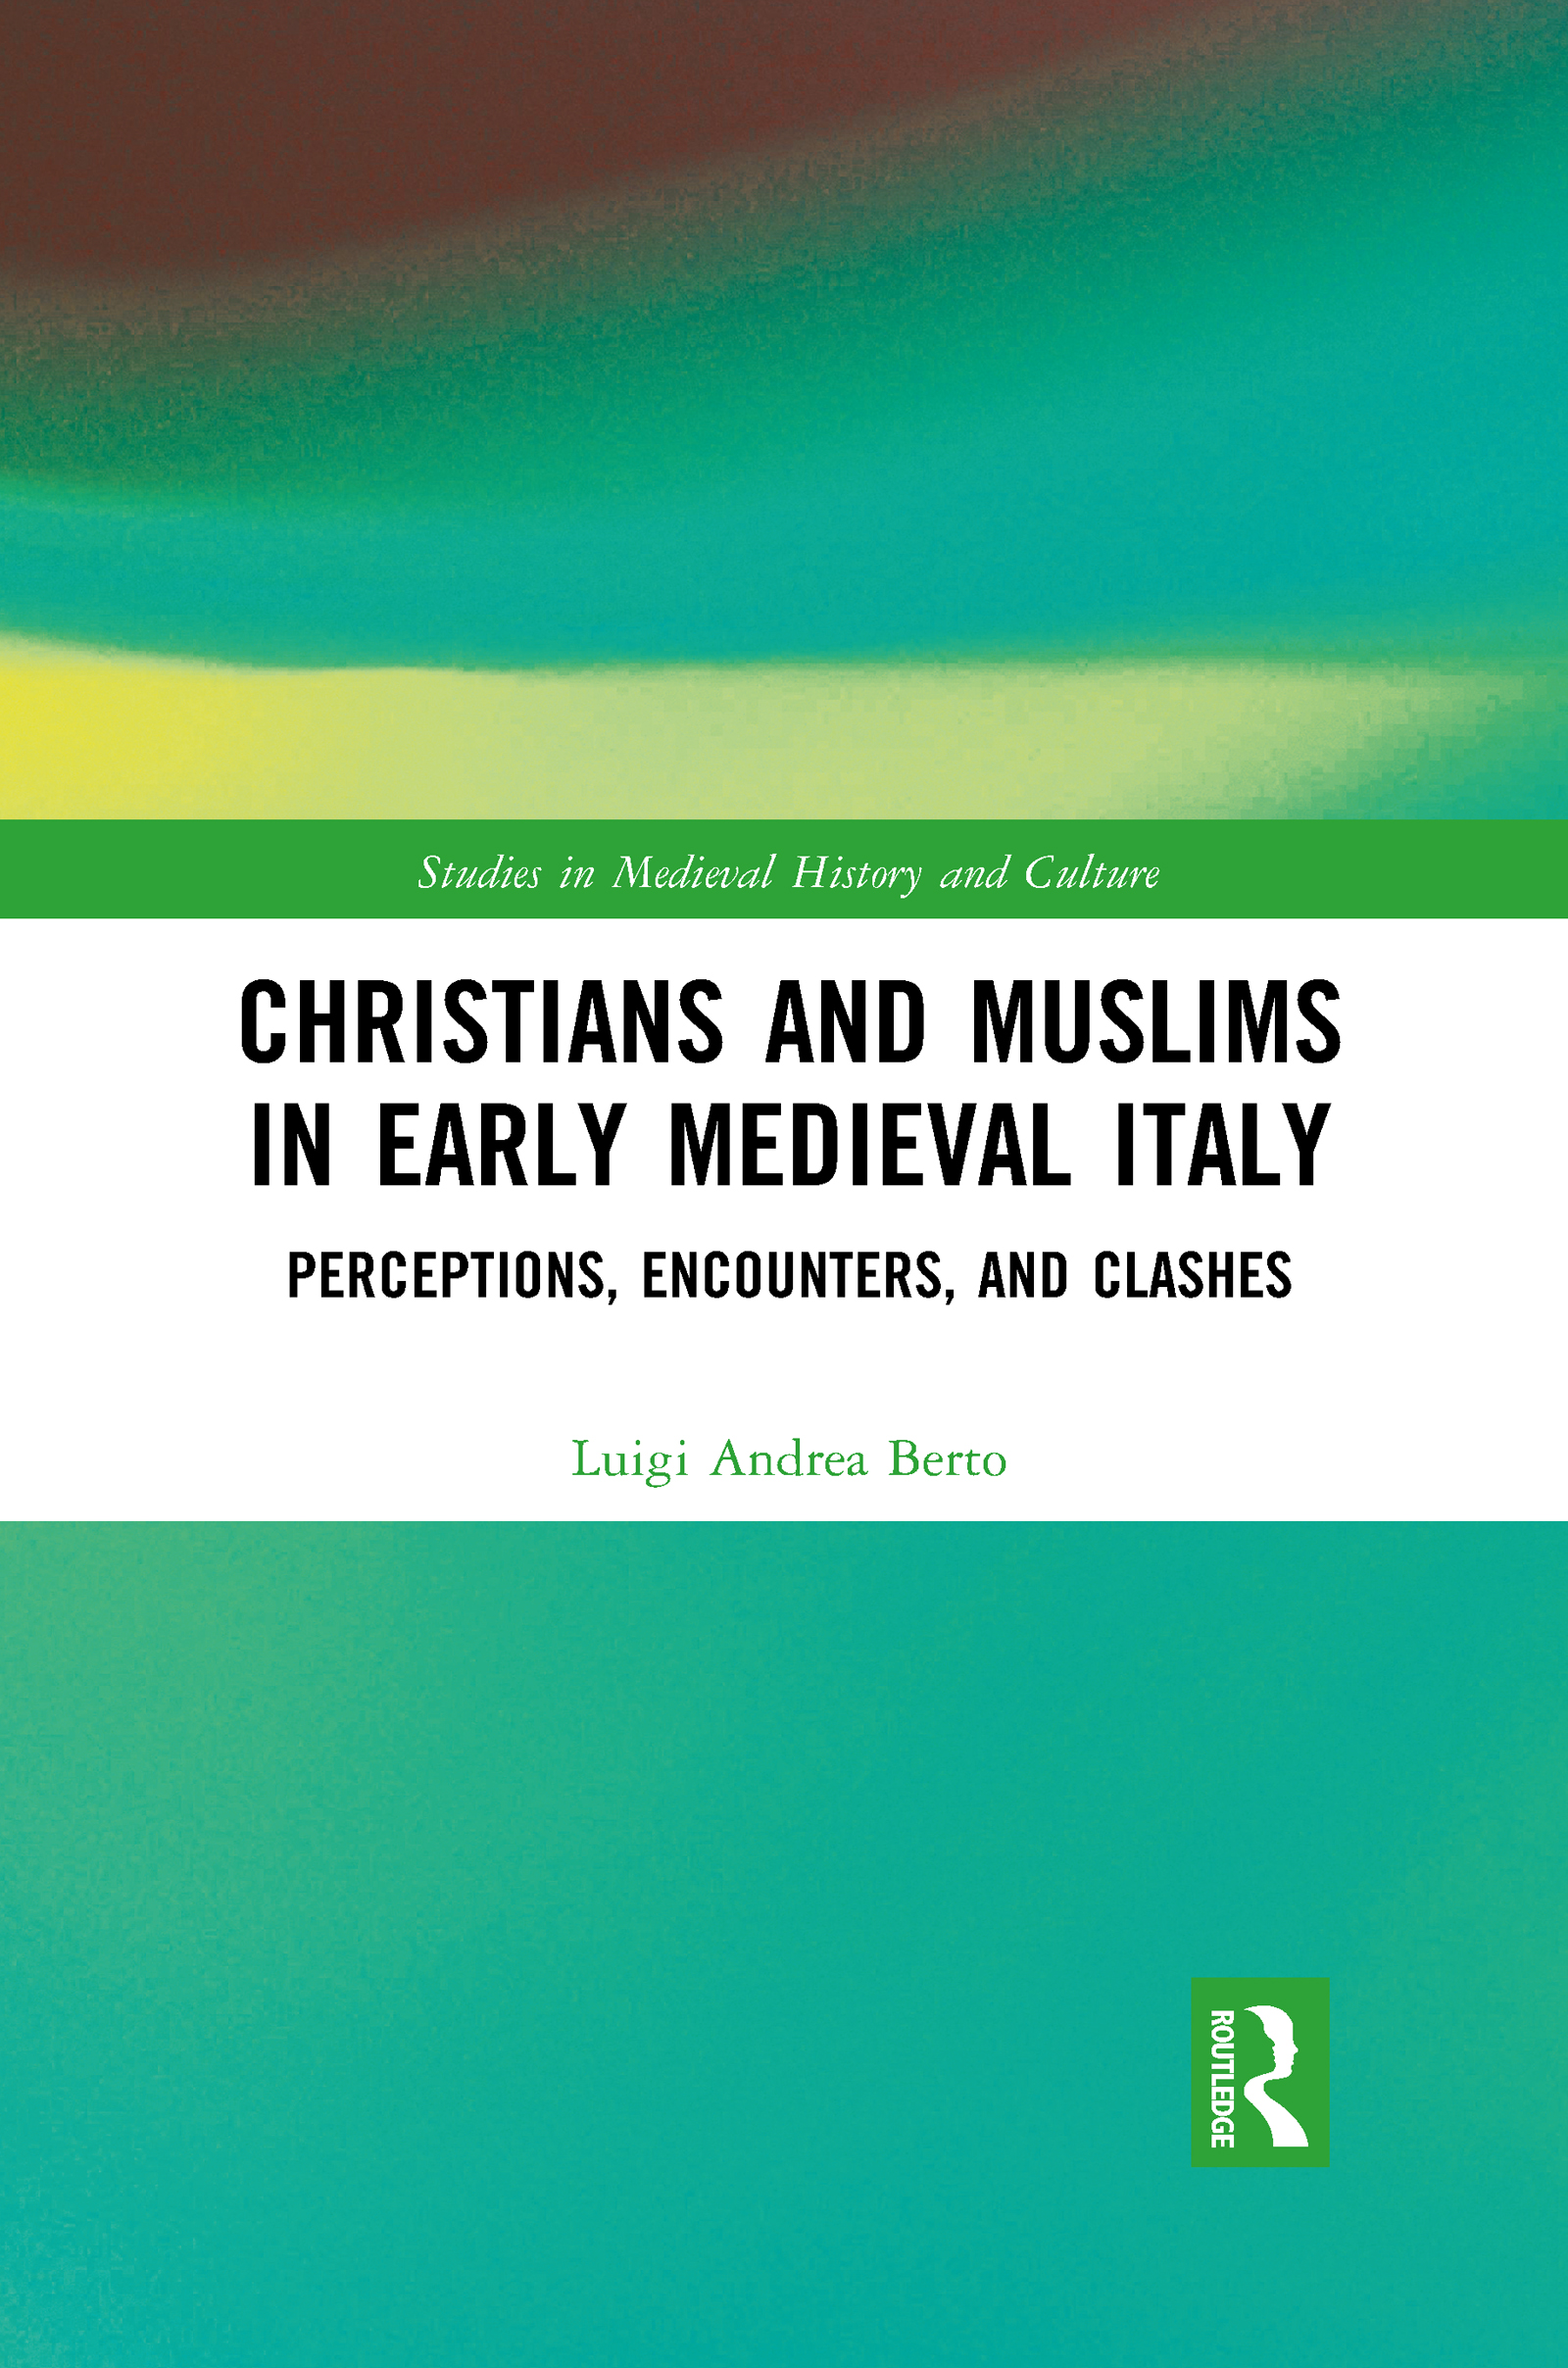 Christians and Muslims in Early Medieval Italy